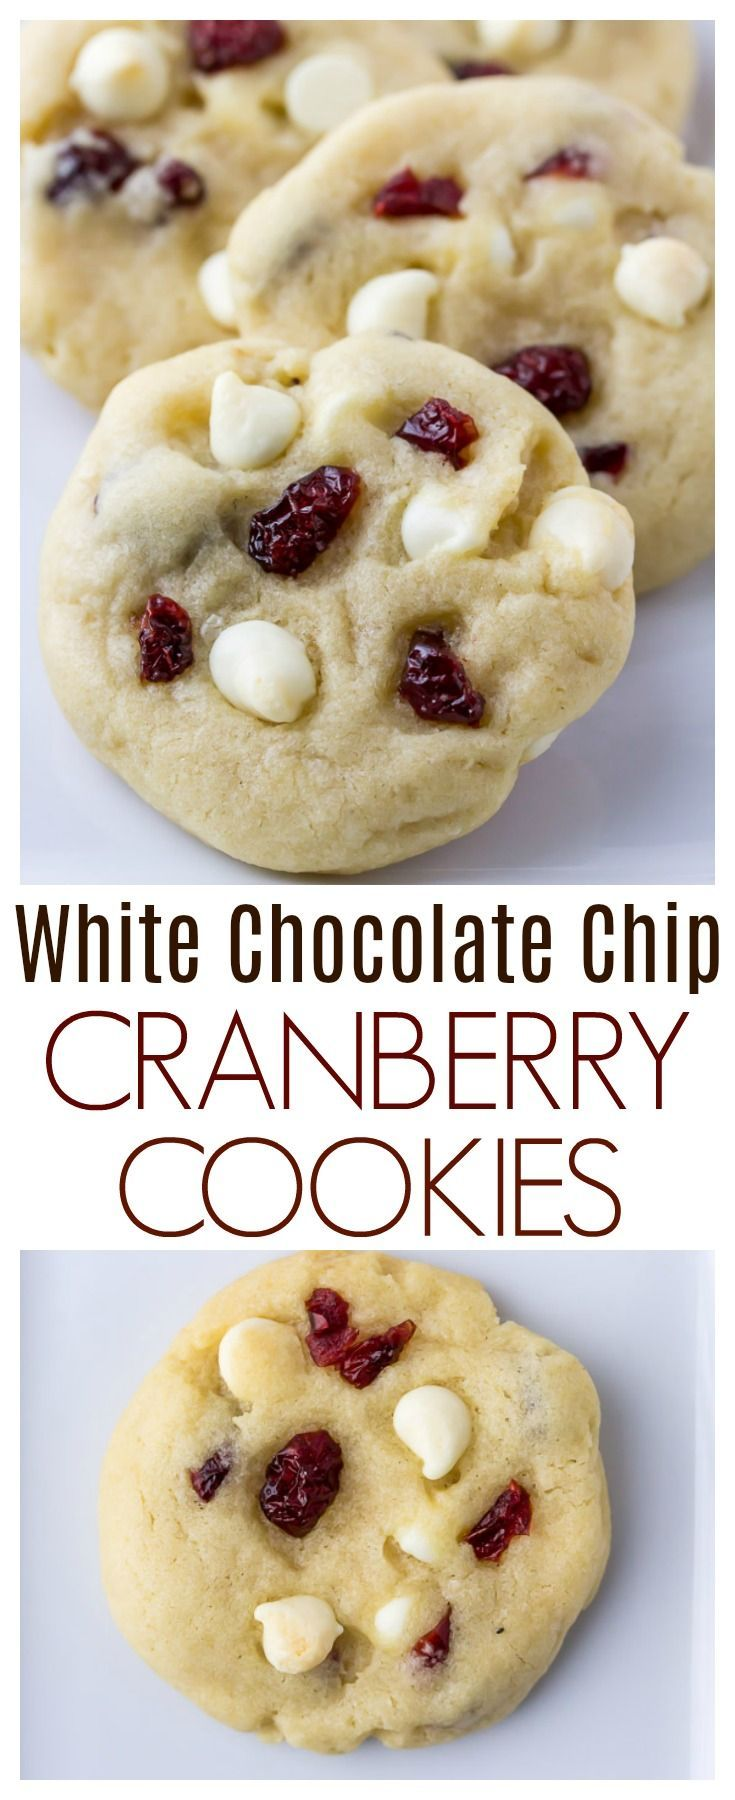 Soft and Chewy White Chocolate Chip Cranberry Cookies Recipe